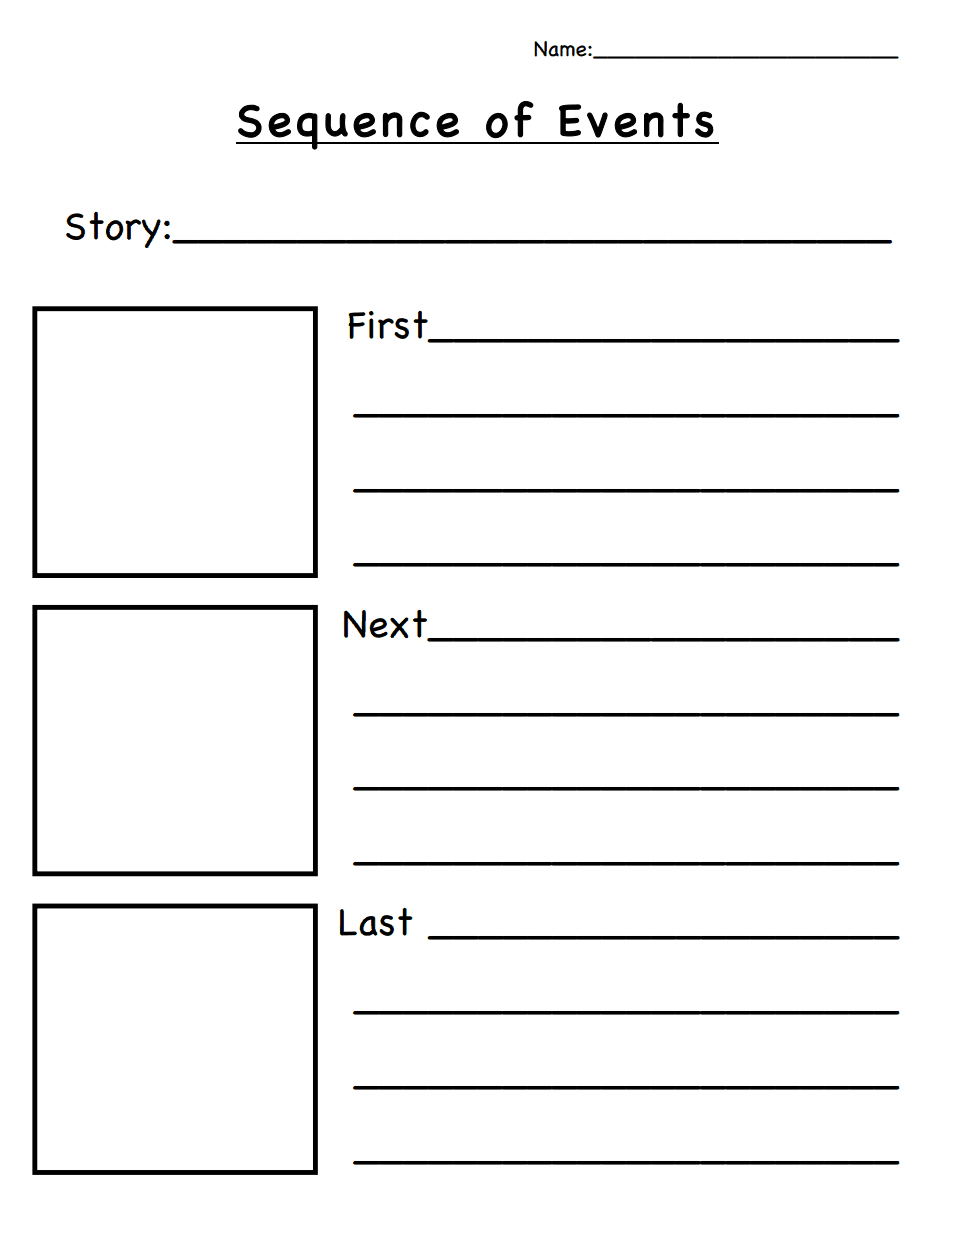 Sequence Of Events.pdf | Classroom Ideas | Story Sequencing - Free Printable Sequence Of Events Graphic Organizer